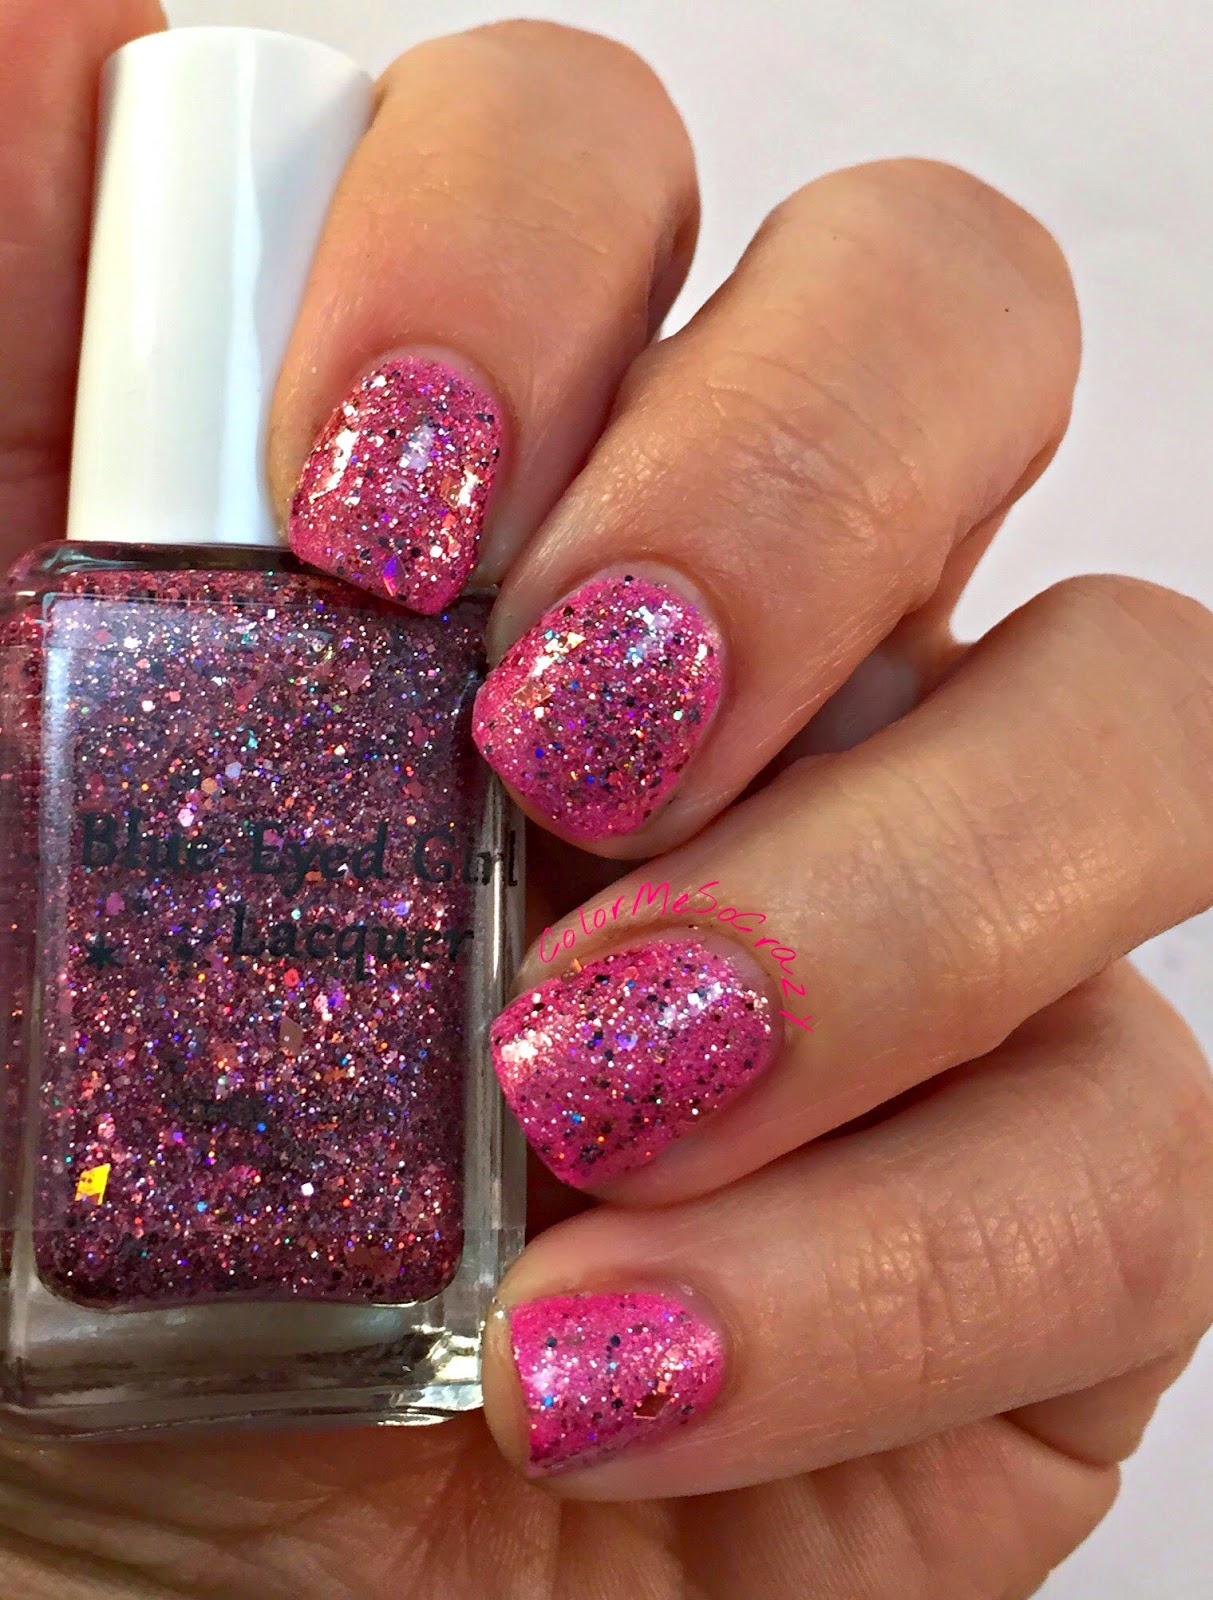 begl, blue eyed girl lacquer, nail polish, pink, spark in the dark, Couting down until I see you, pink glitter indie polish